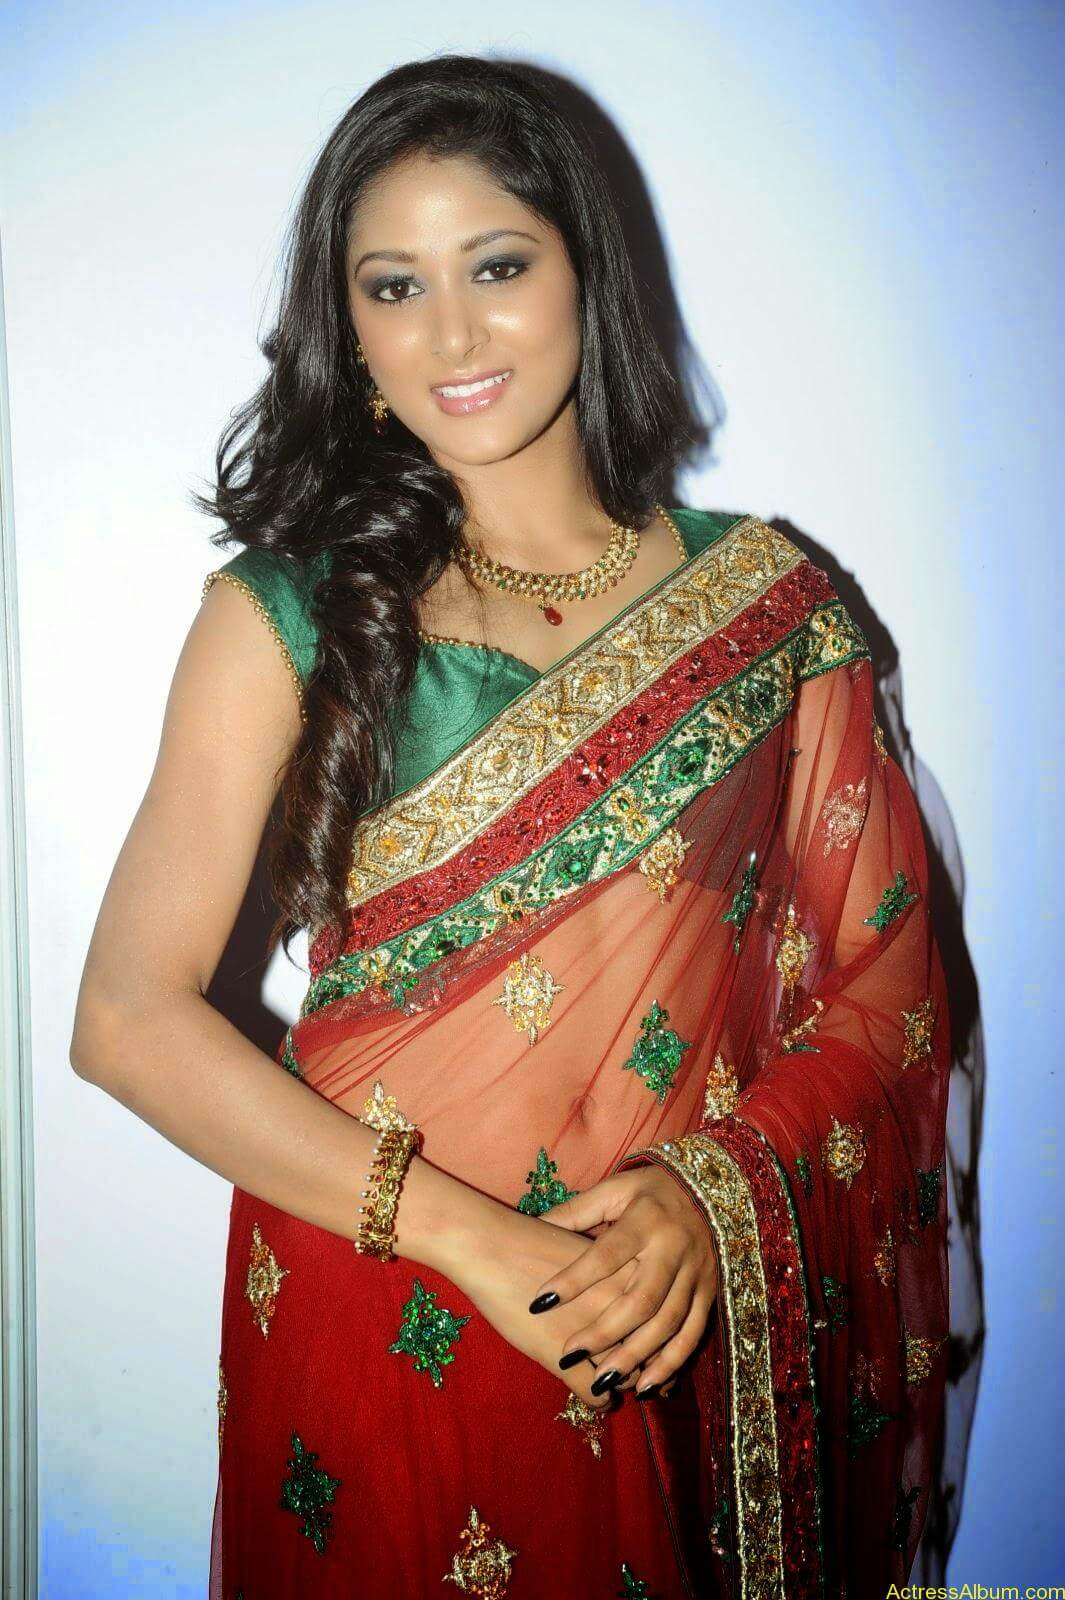 Sushma Raj Hot Navel Pics In Transparent Saree Photos4